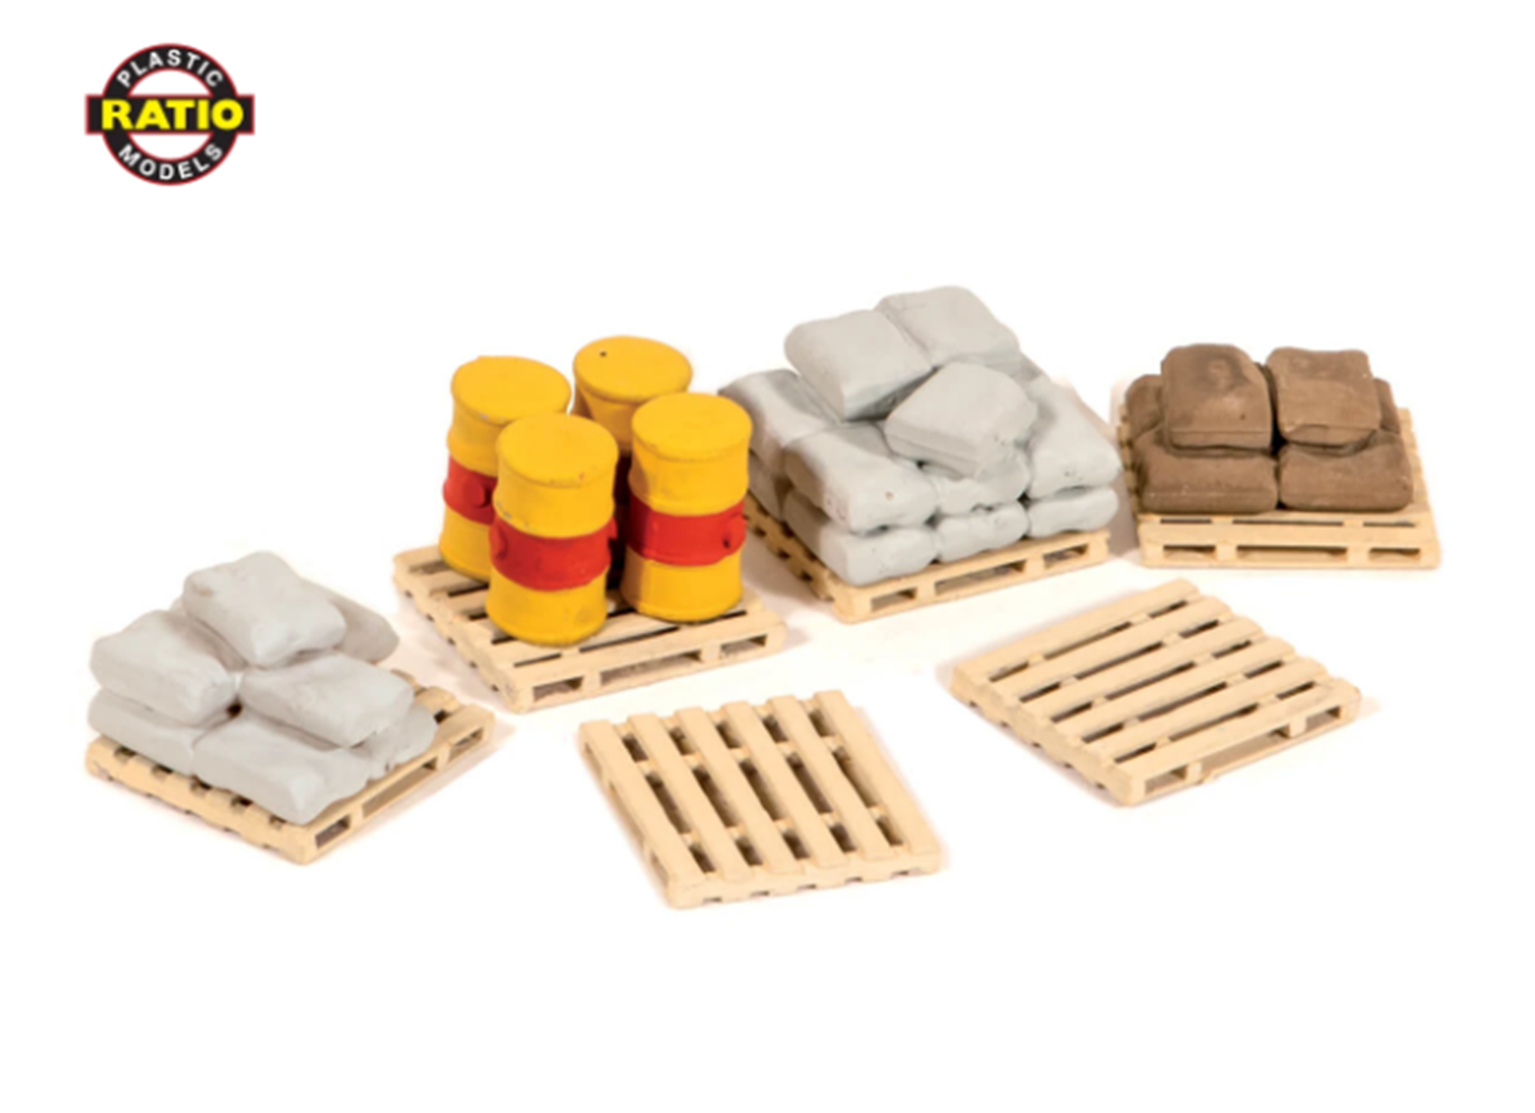 Pack of assorted pallets, sacks and barrels